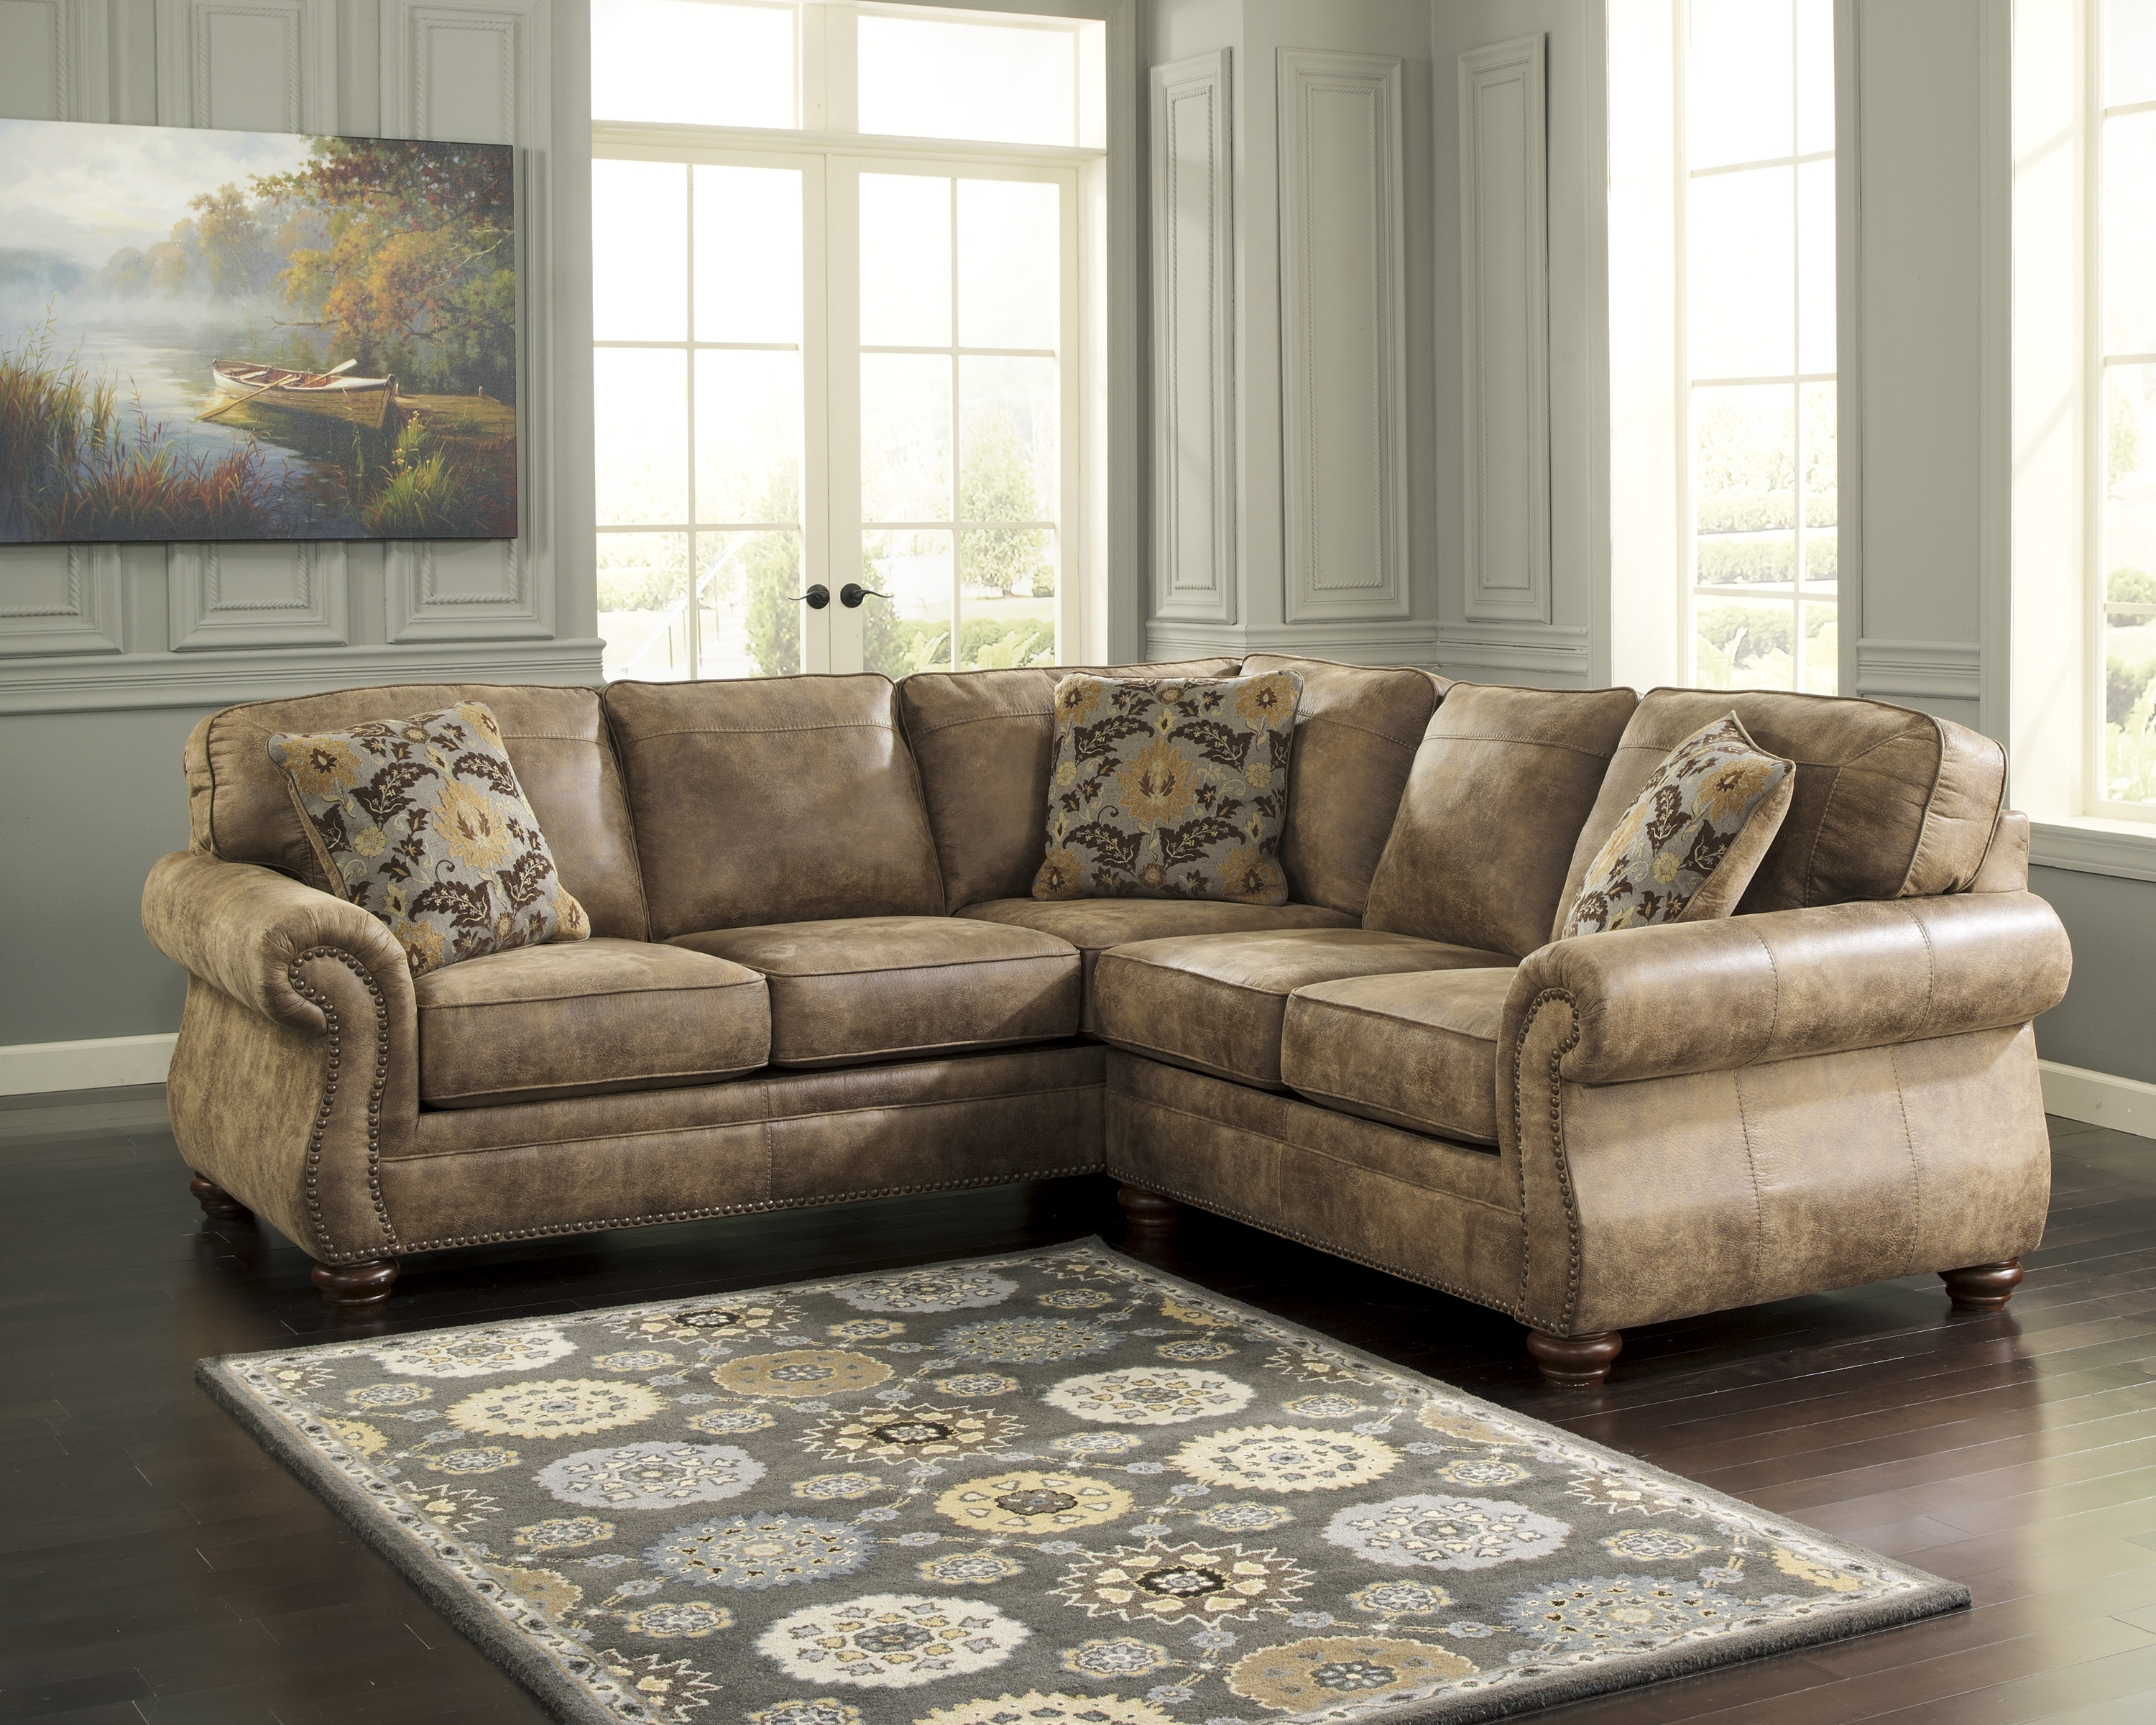 Most Current Sectional Sofas With Nailhead Trim Throughout Ashley Furniture Fabric Sectionals, Ashley Furniture Sofa Sleepers (View 5 of 15)